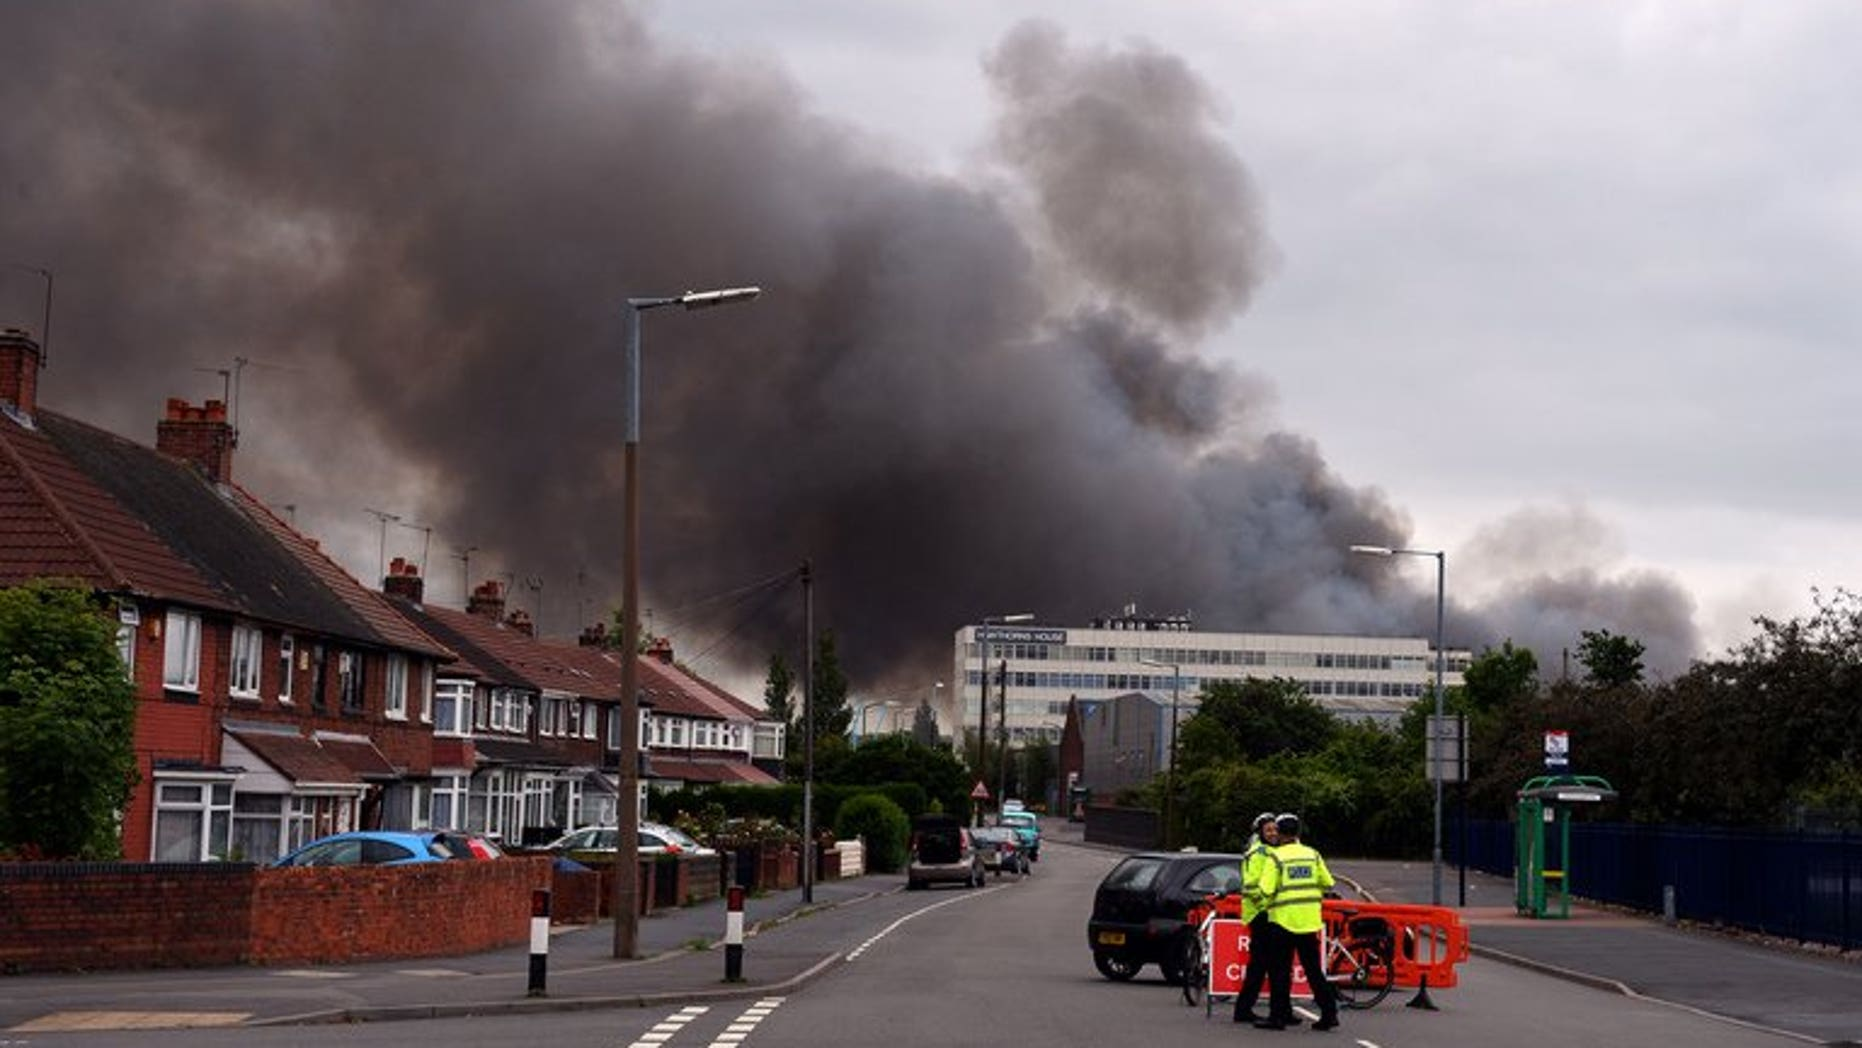 File picture of a fire at a recycling centre in Smethwick, Birmingham, on July 1. Around 50 firefighters were on Wednesday battling a huge fire at a recycling plant near Manchester, the fire service said.